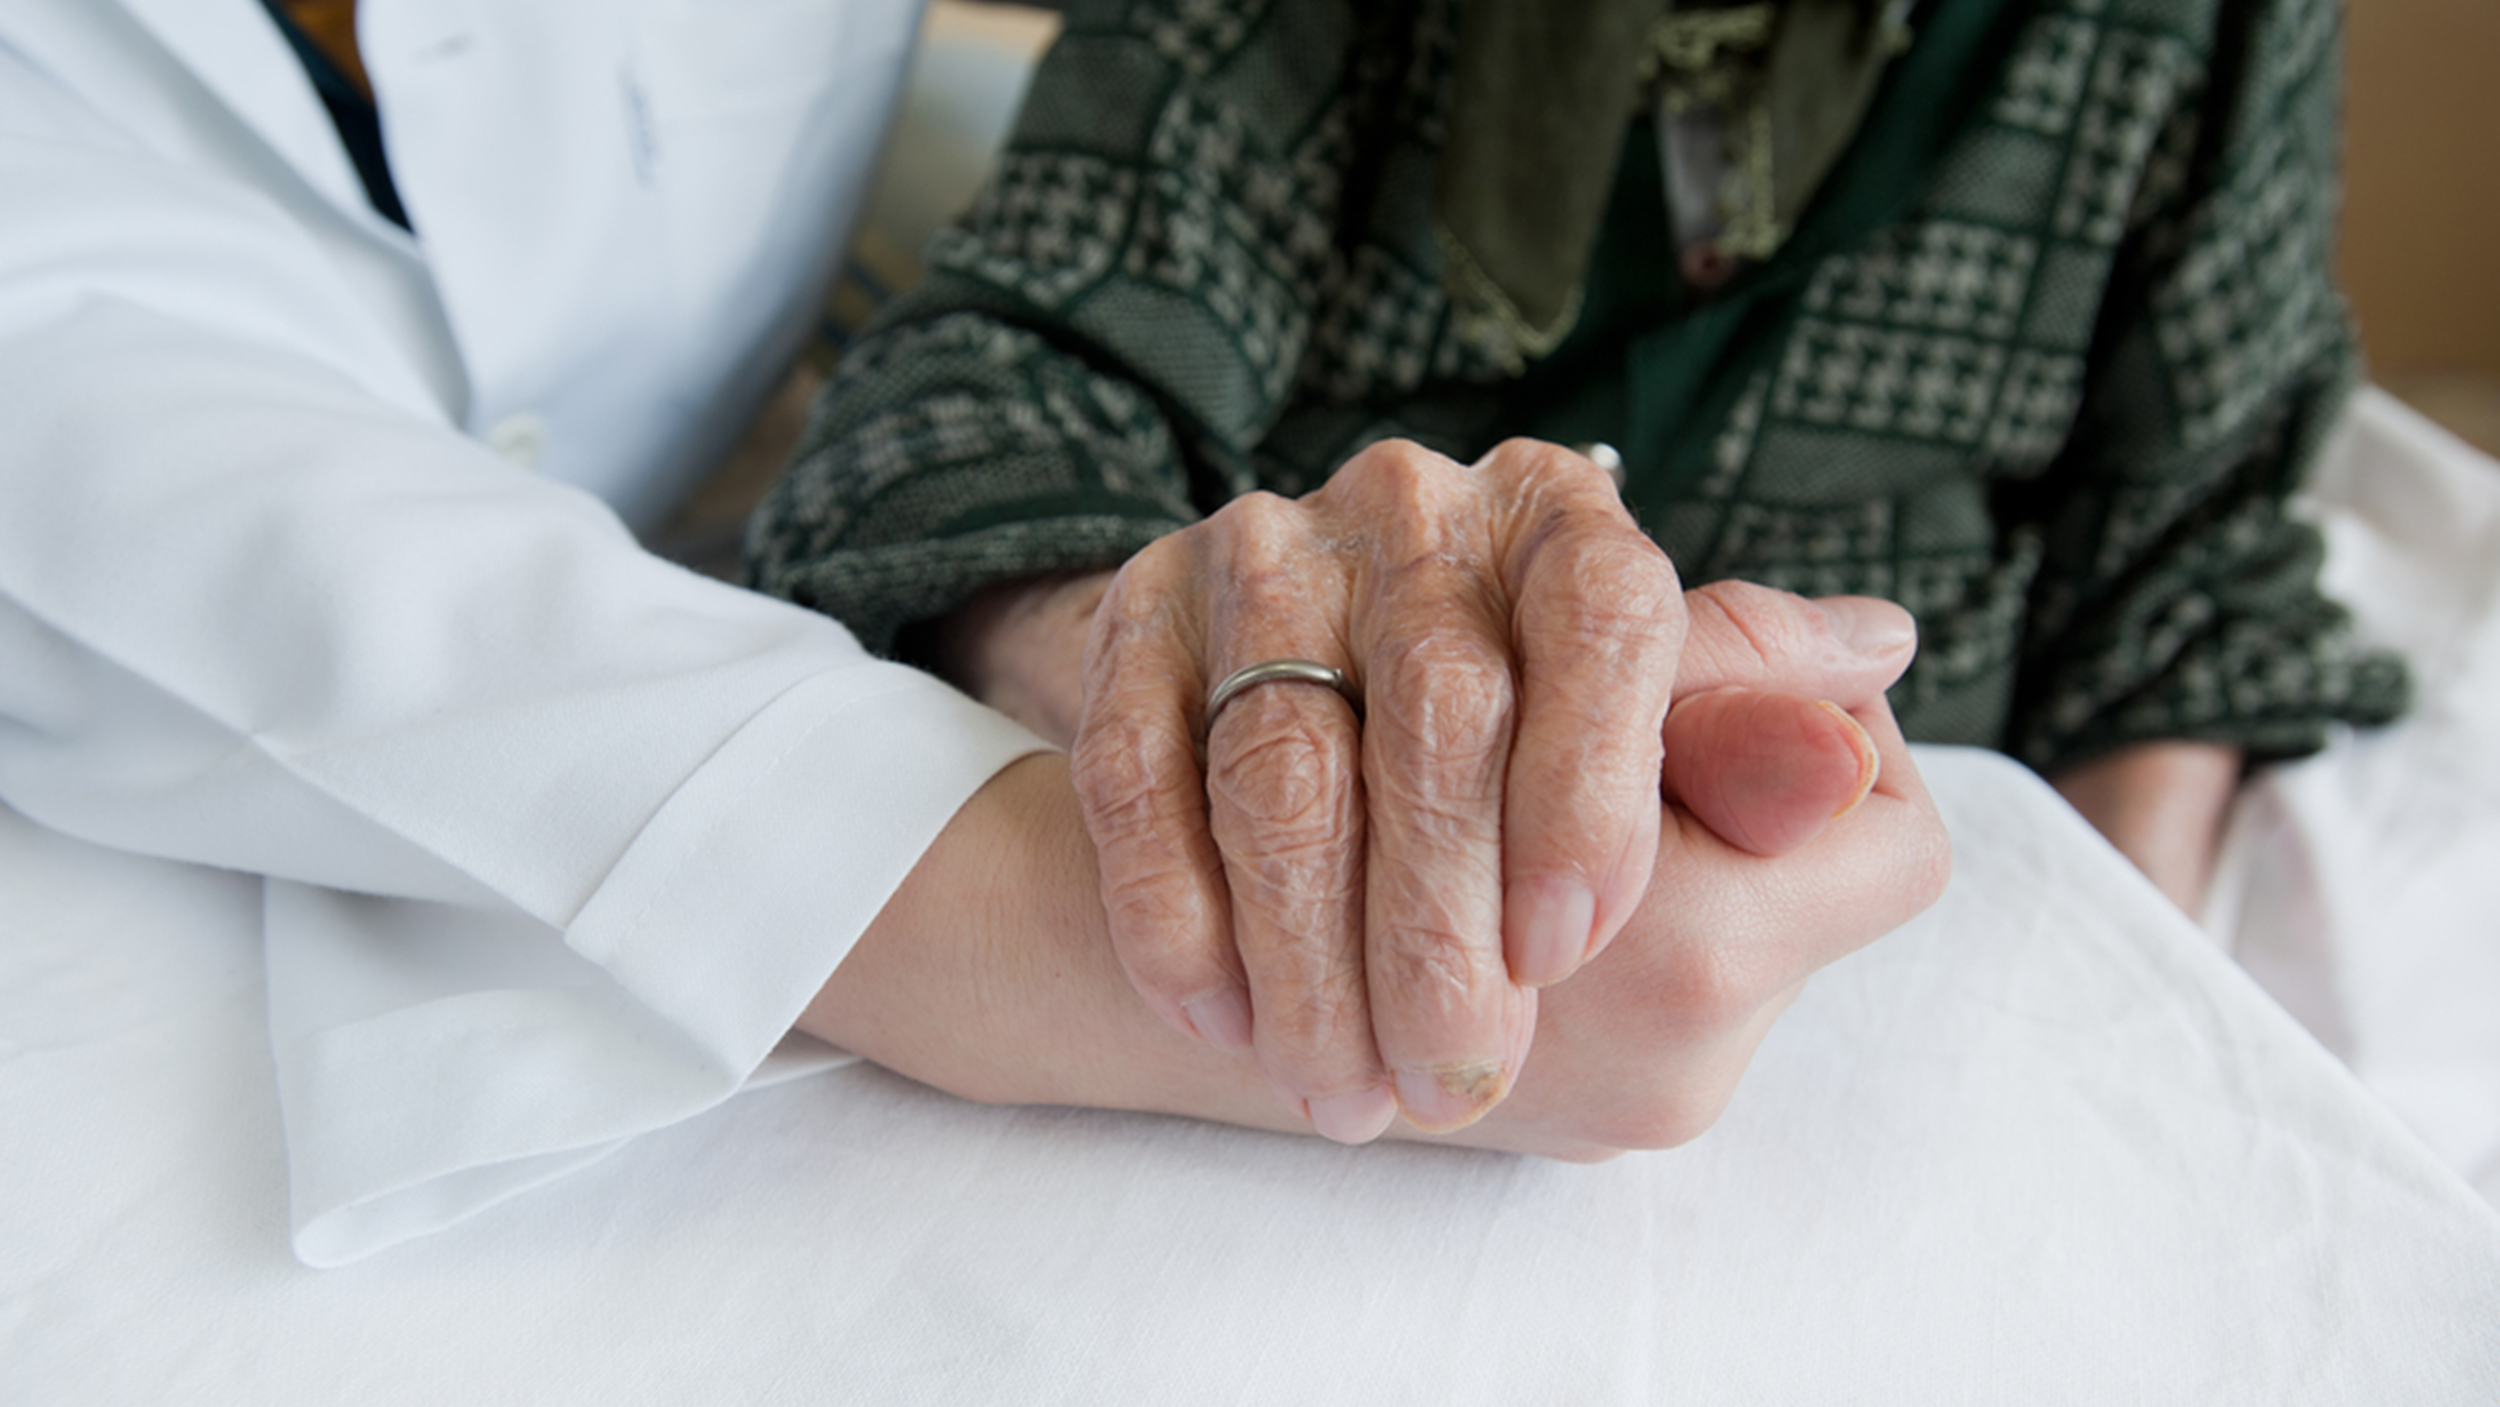 assisted living costs - HD2500×1407